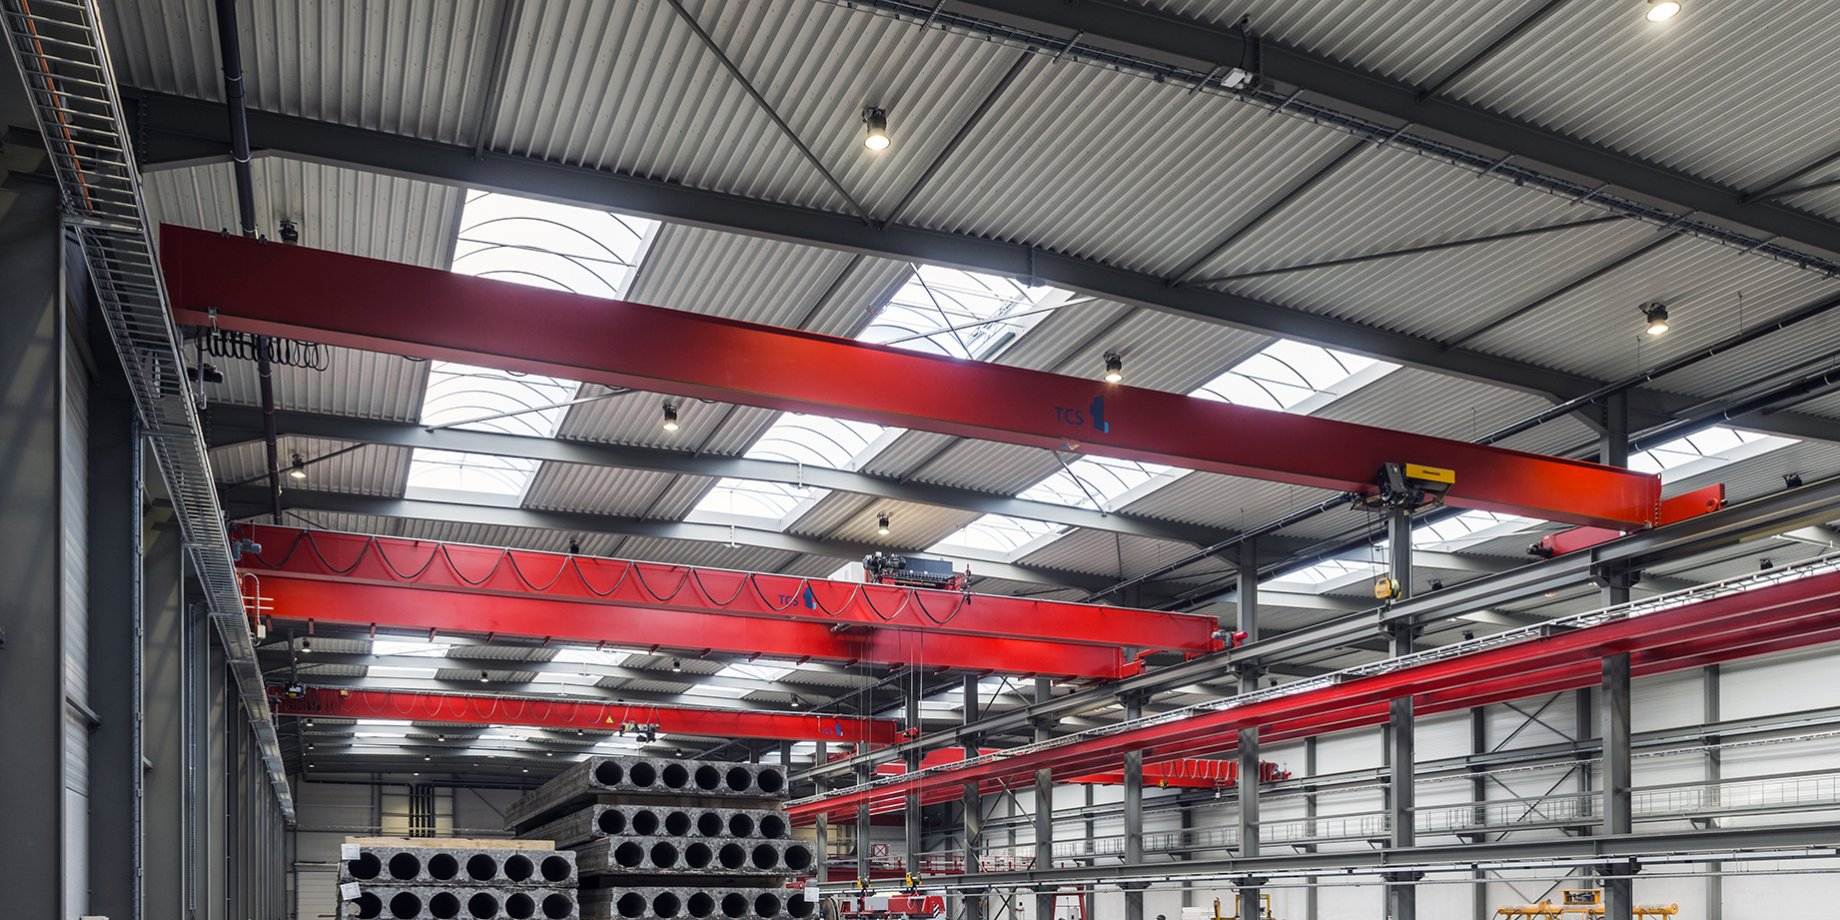 TCS_Timmers_DBK 2x8t - 26 m dual girder overhead cranes equipped with intelligent motion control